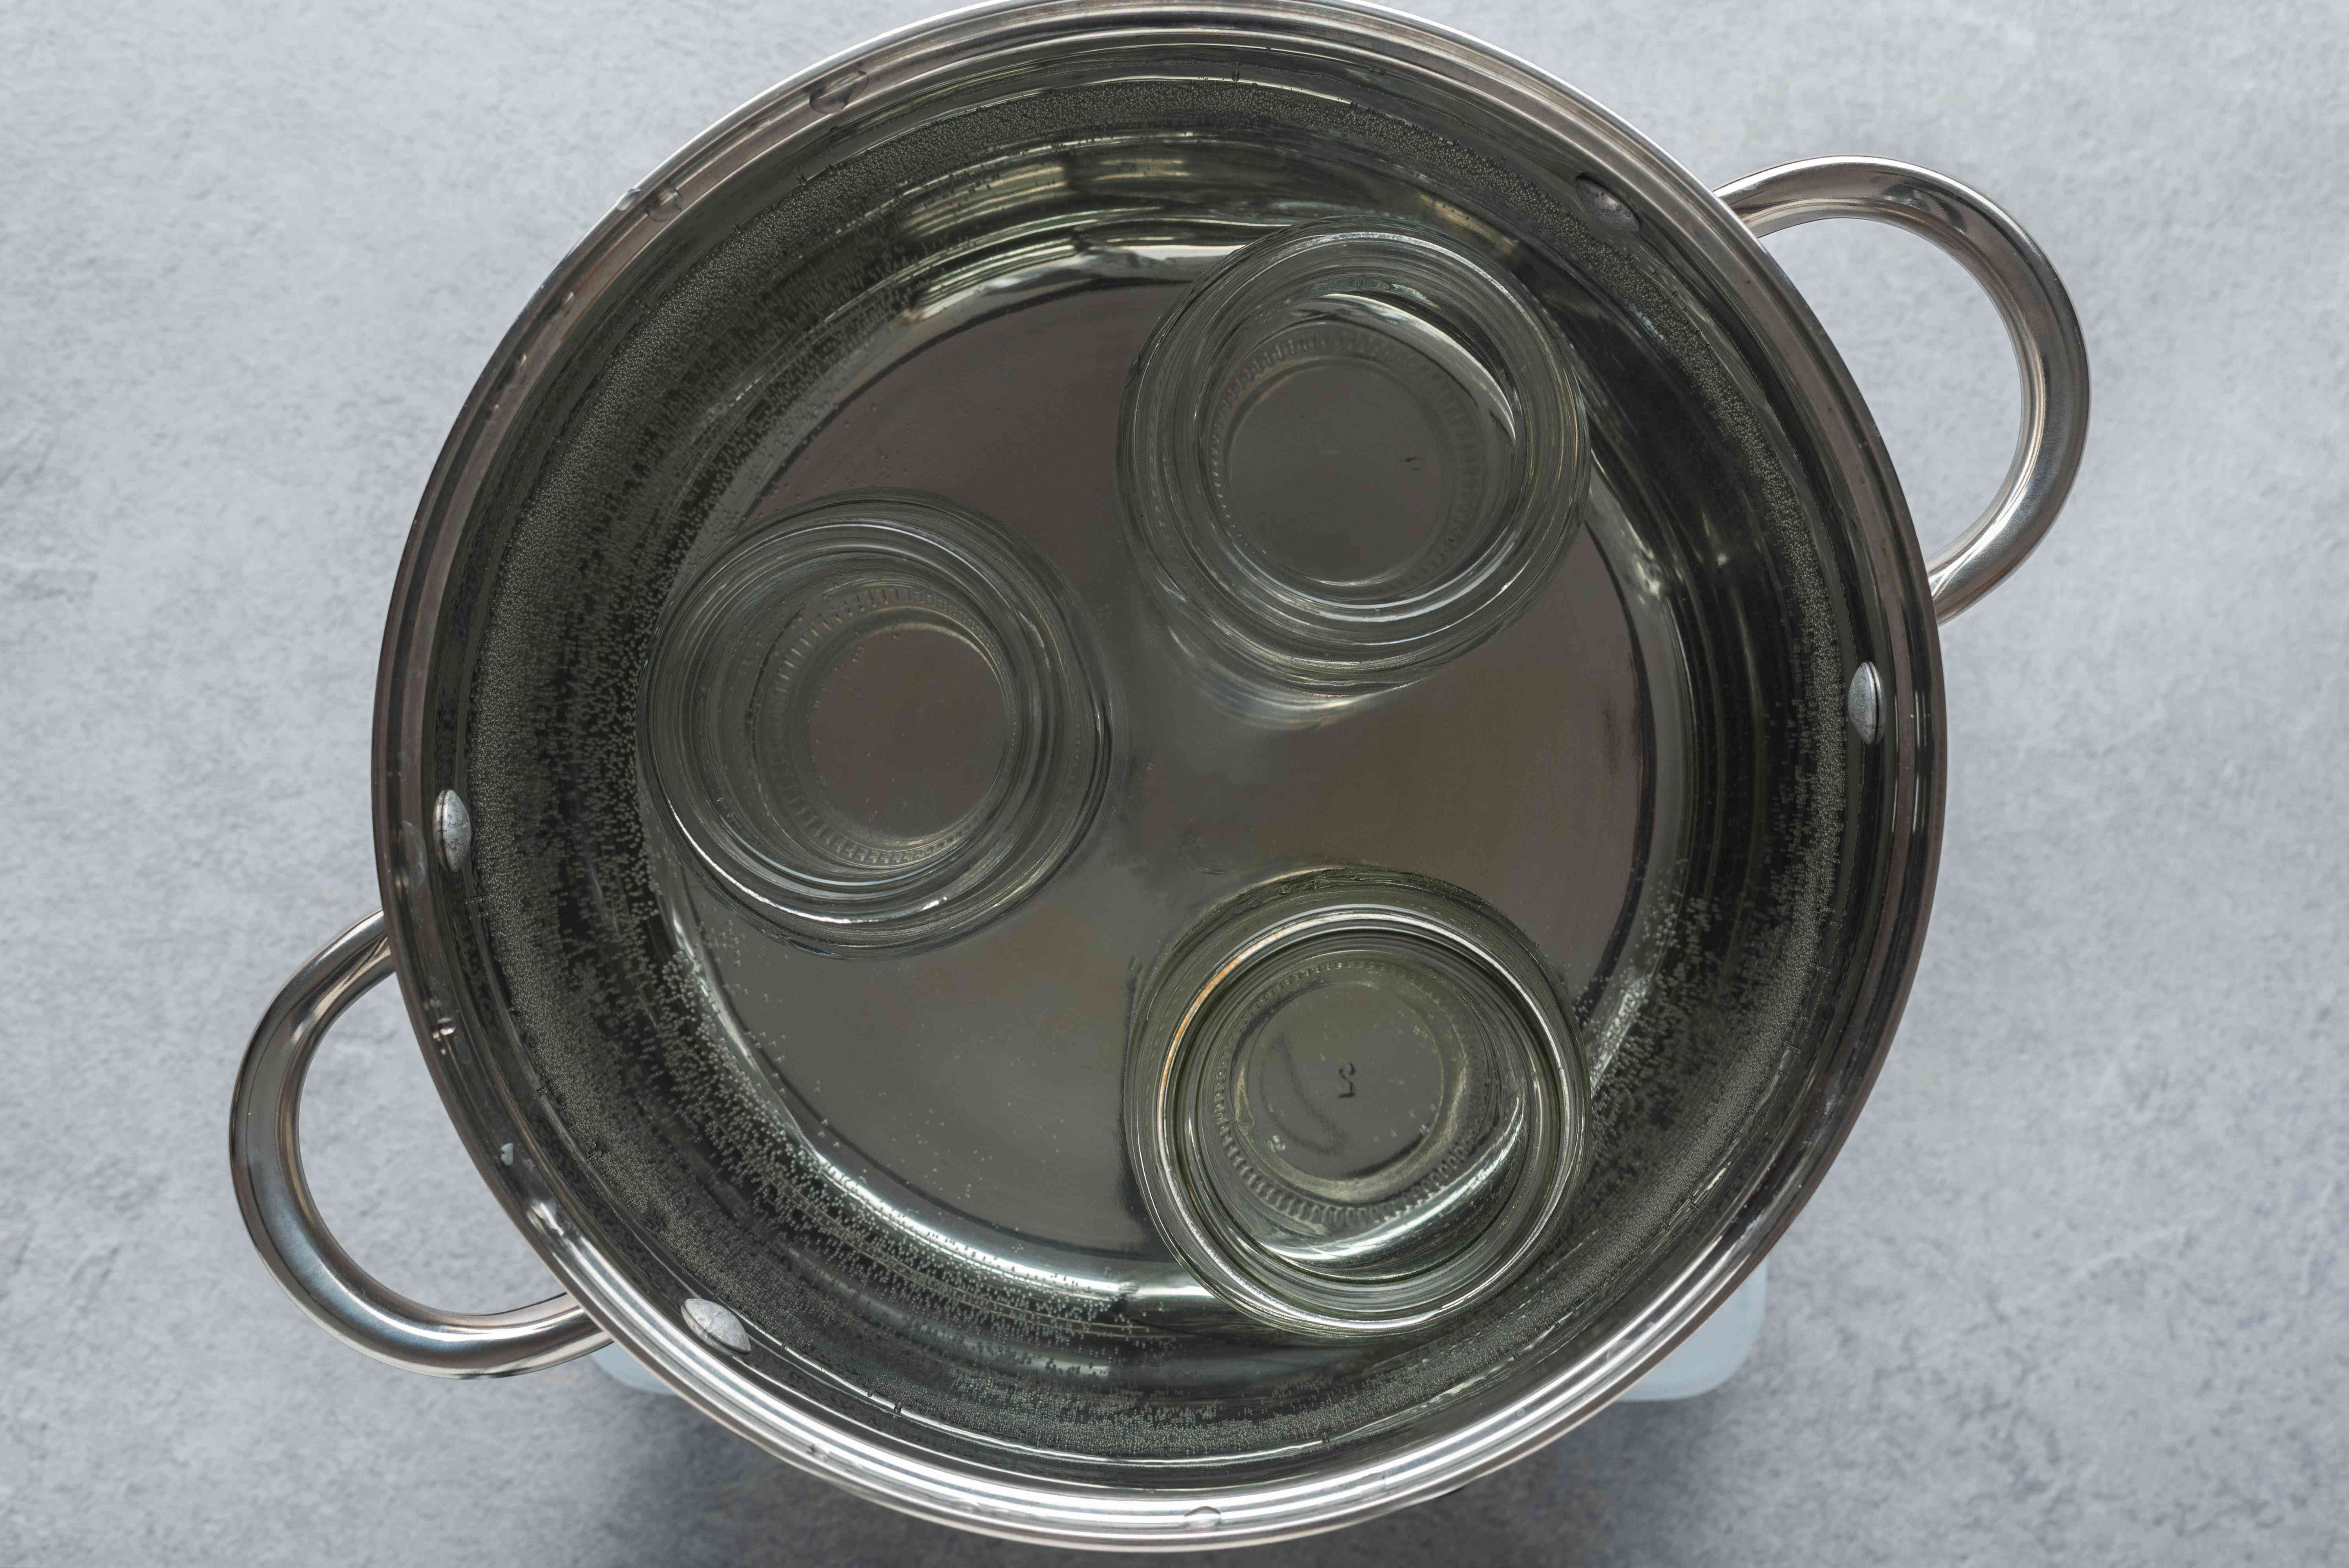 prepare cans in a water canner